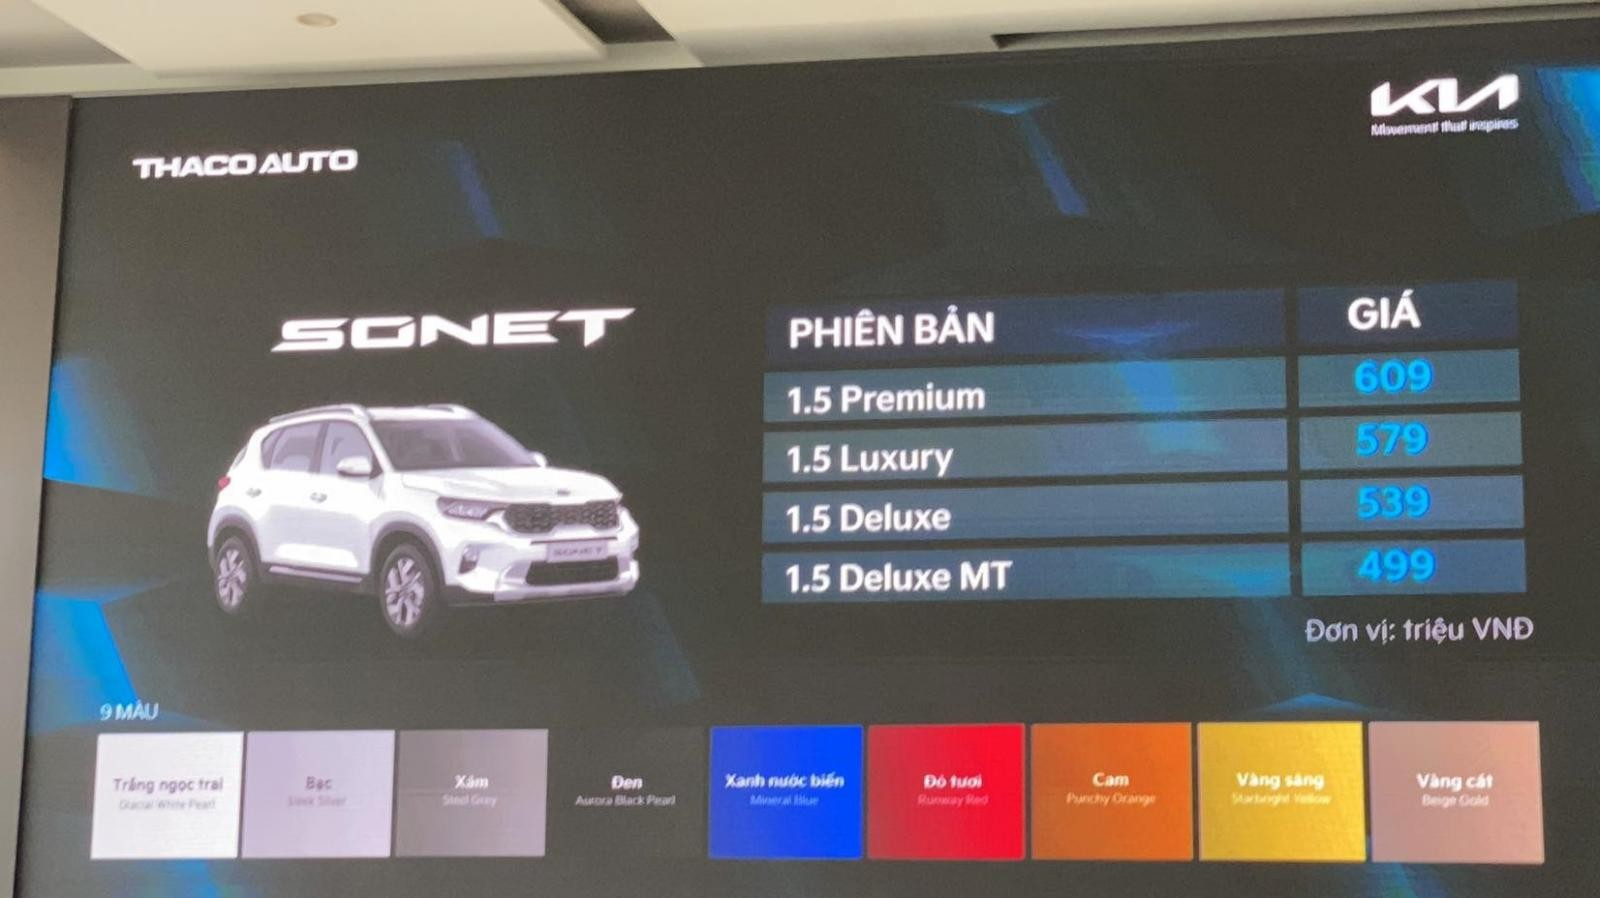 Kia Sonet officially offers Vietnam market, starting price is only 499 million VND 1